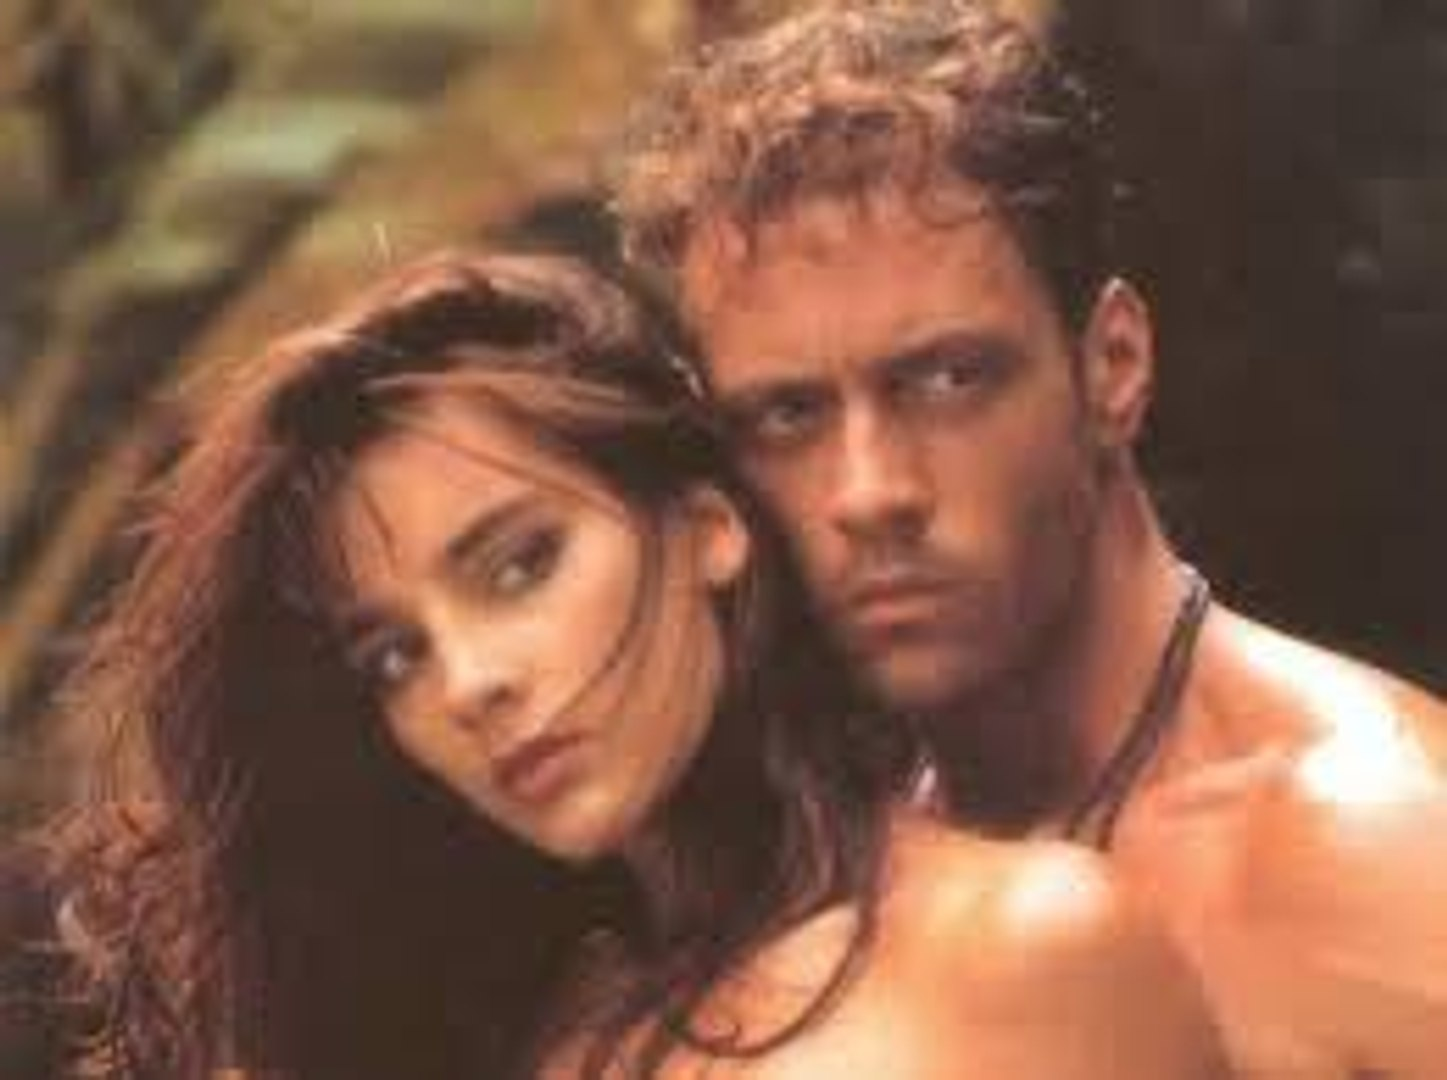 Tarzan X: The Shame of Jane Full Movie Streaming